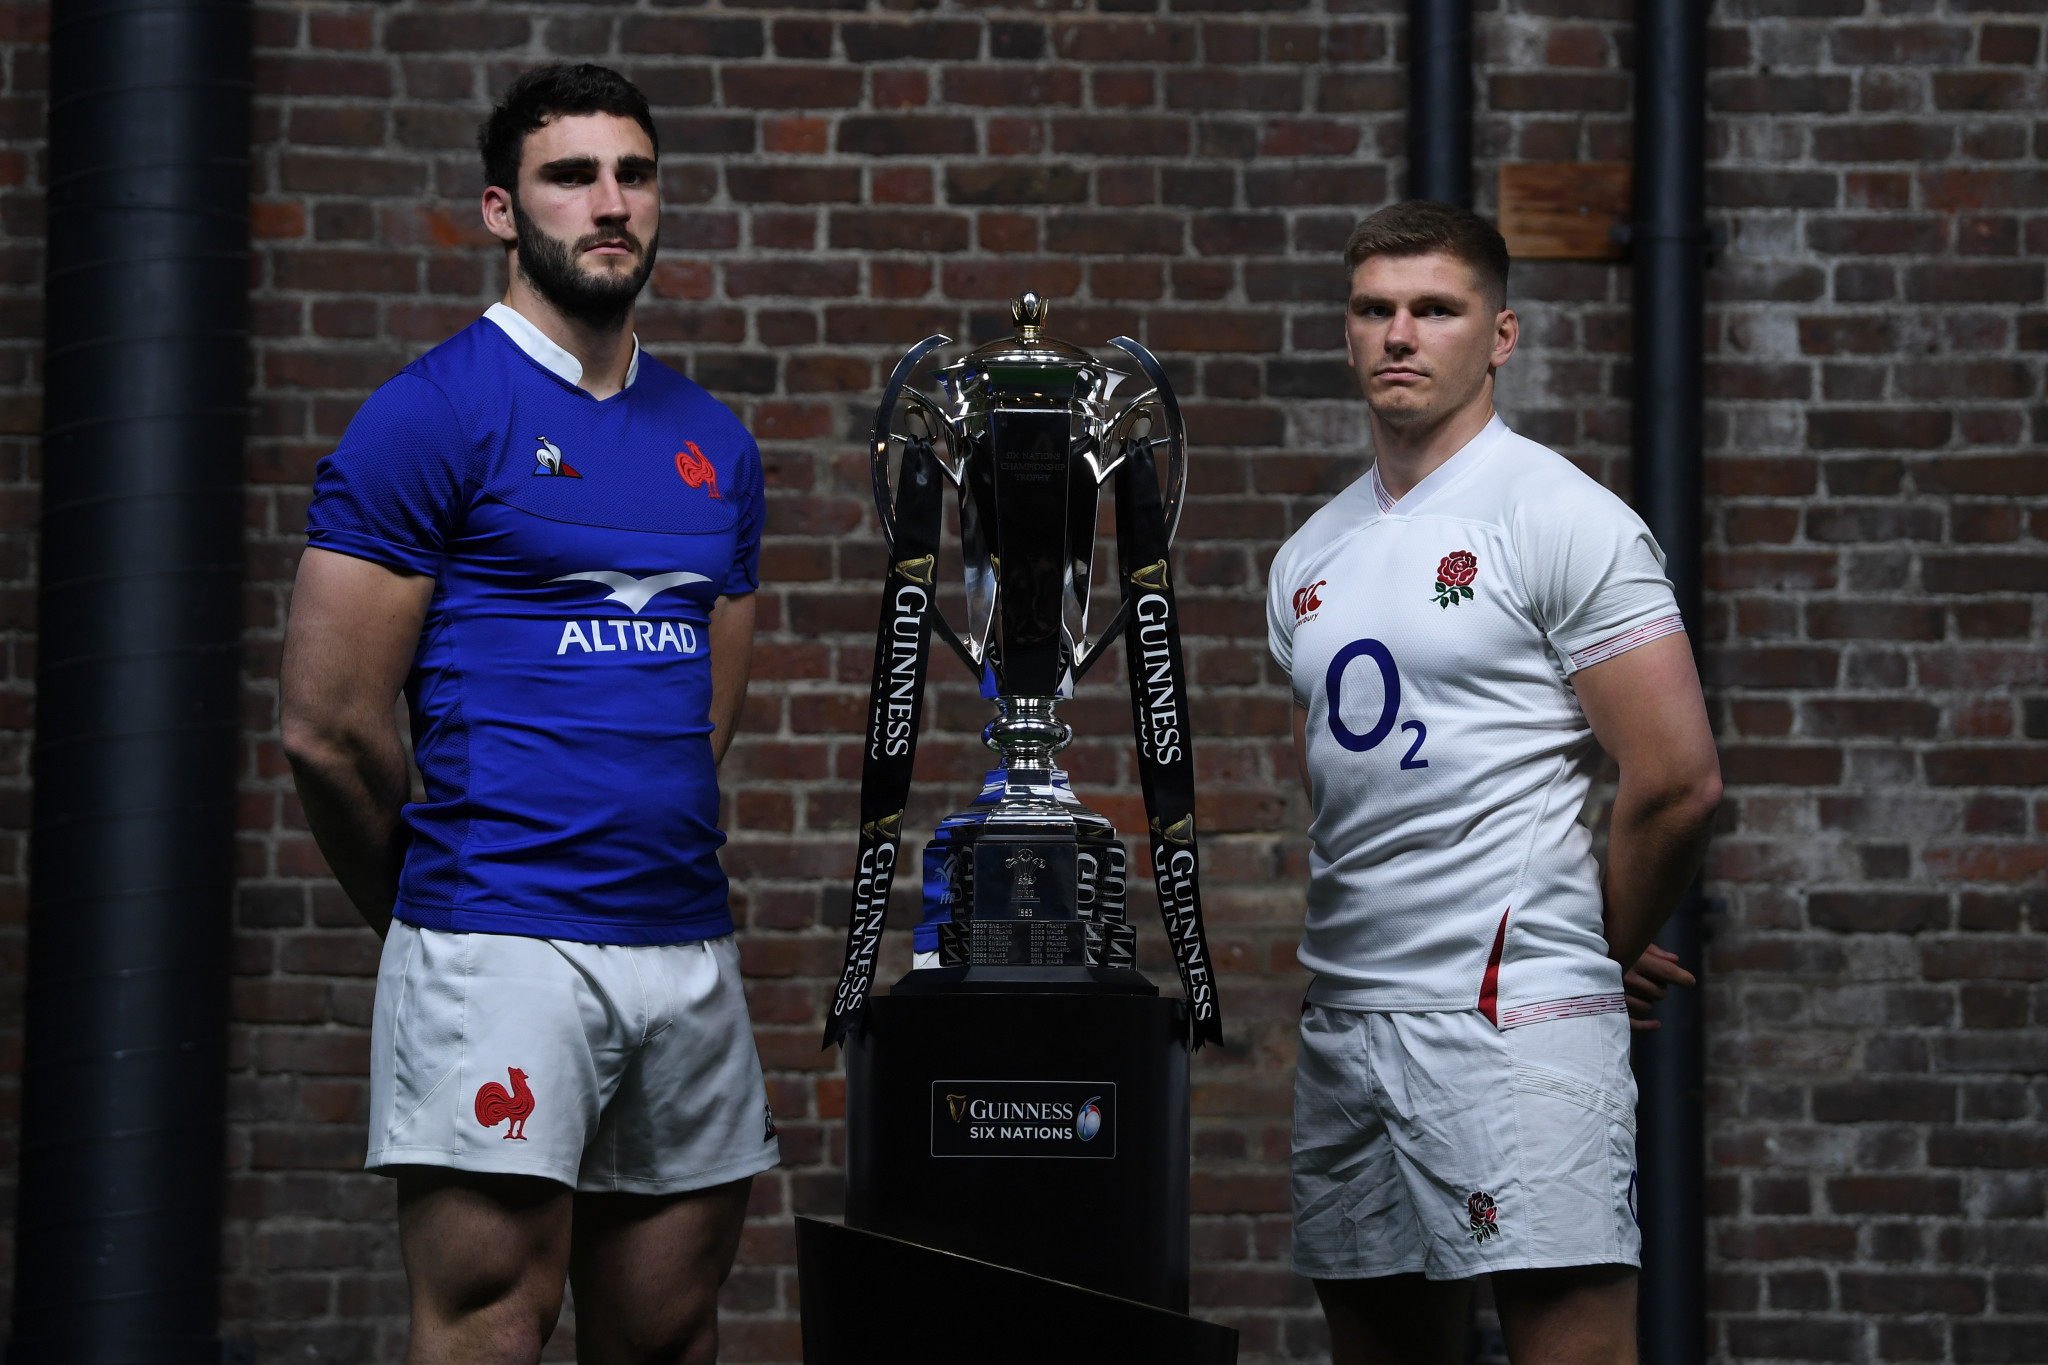 England's Six Nations games in Italy postponed due to coronavirus outbreak